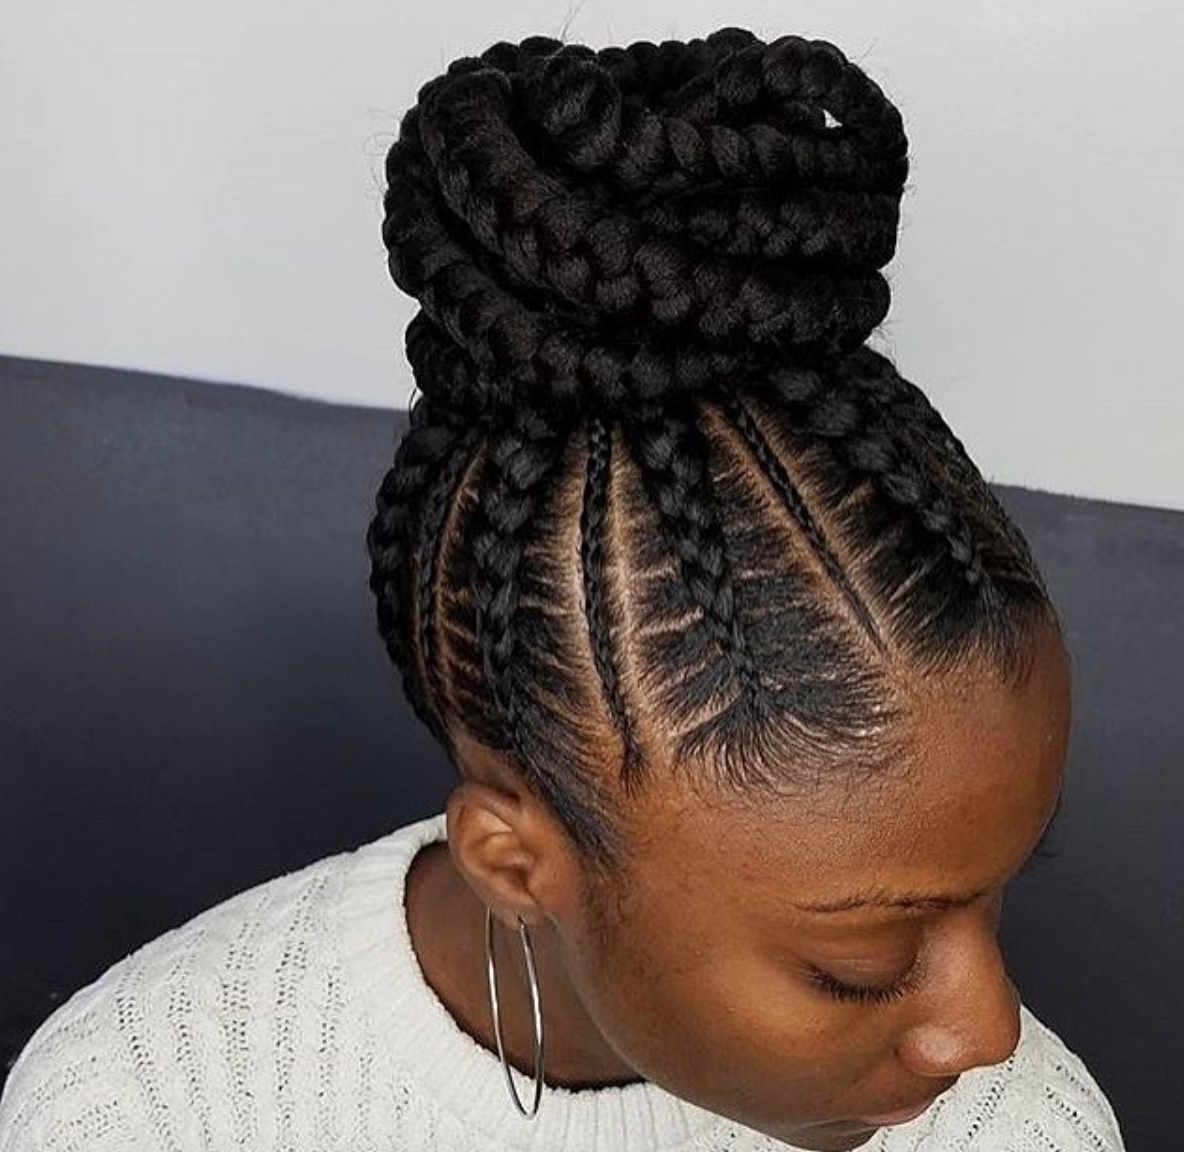 Flawless Braided Bunnarahairbraiding Black Hair Most Delightful Throughout 2017 Braided Up Hairstyles With Weave (View 8 of 15)